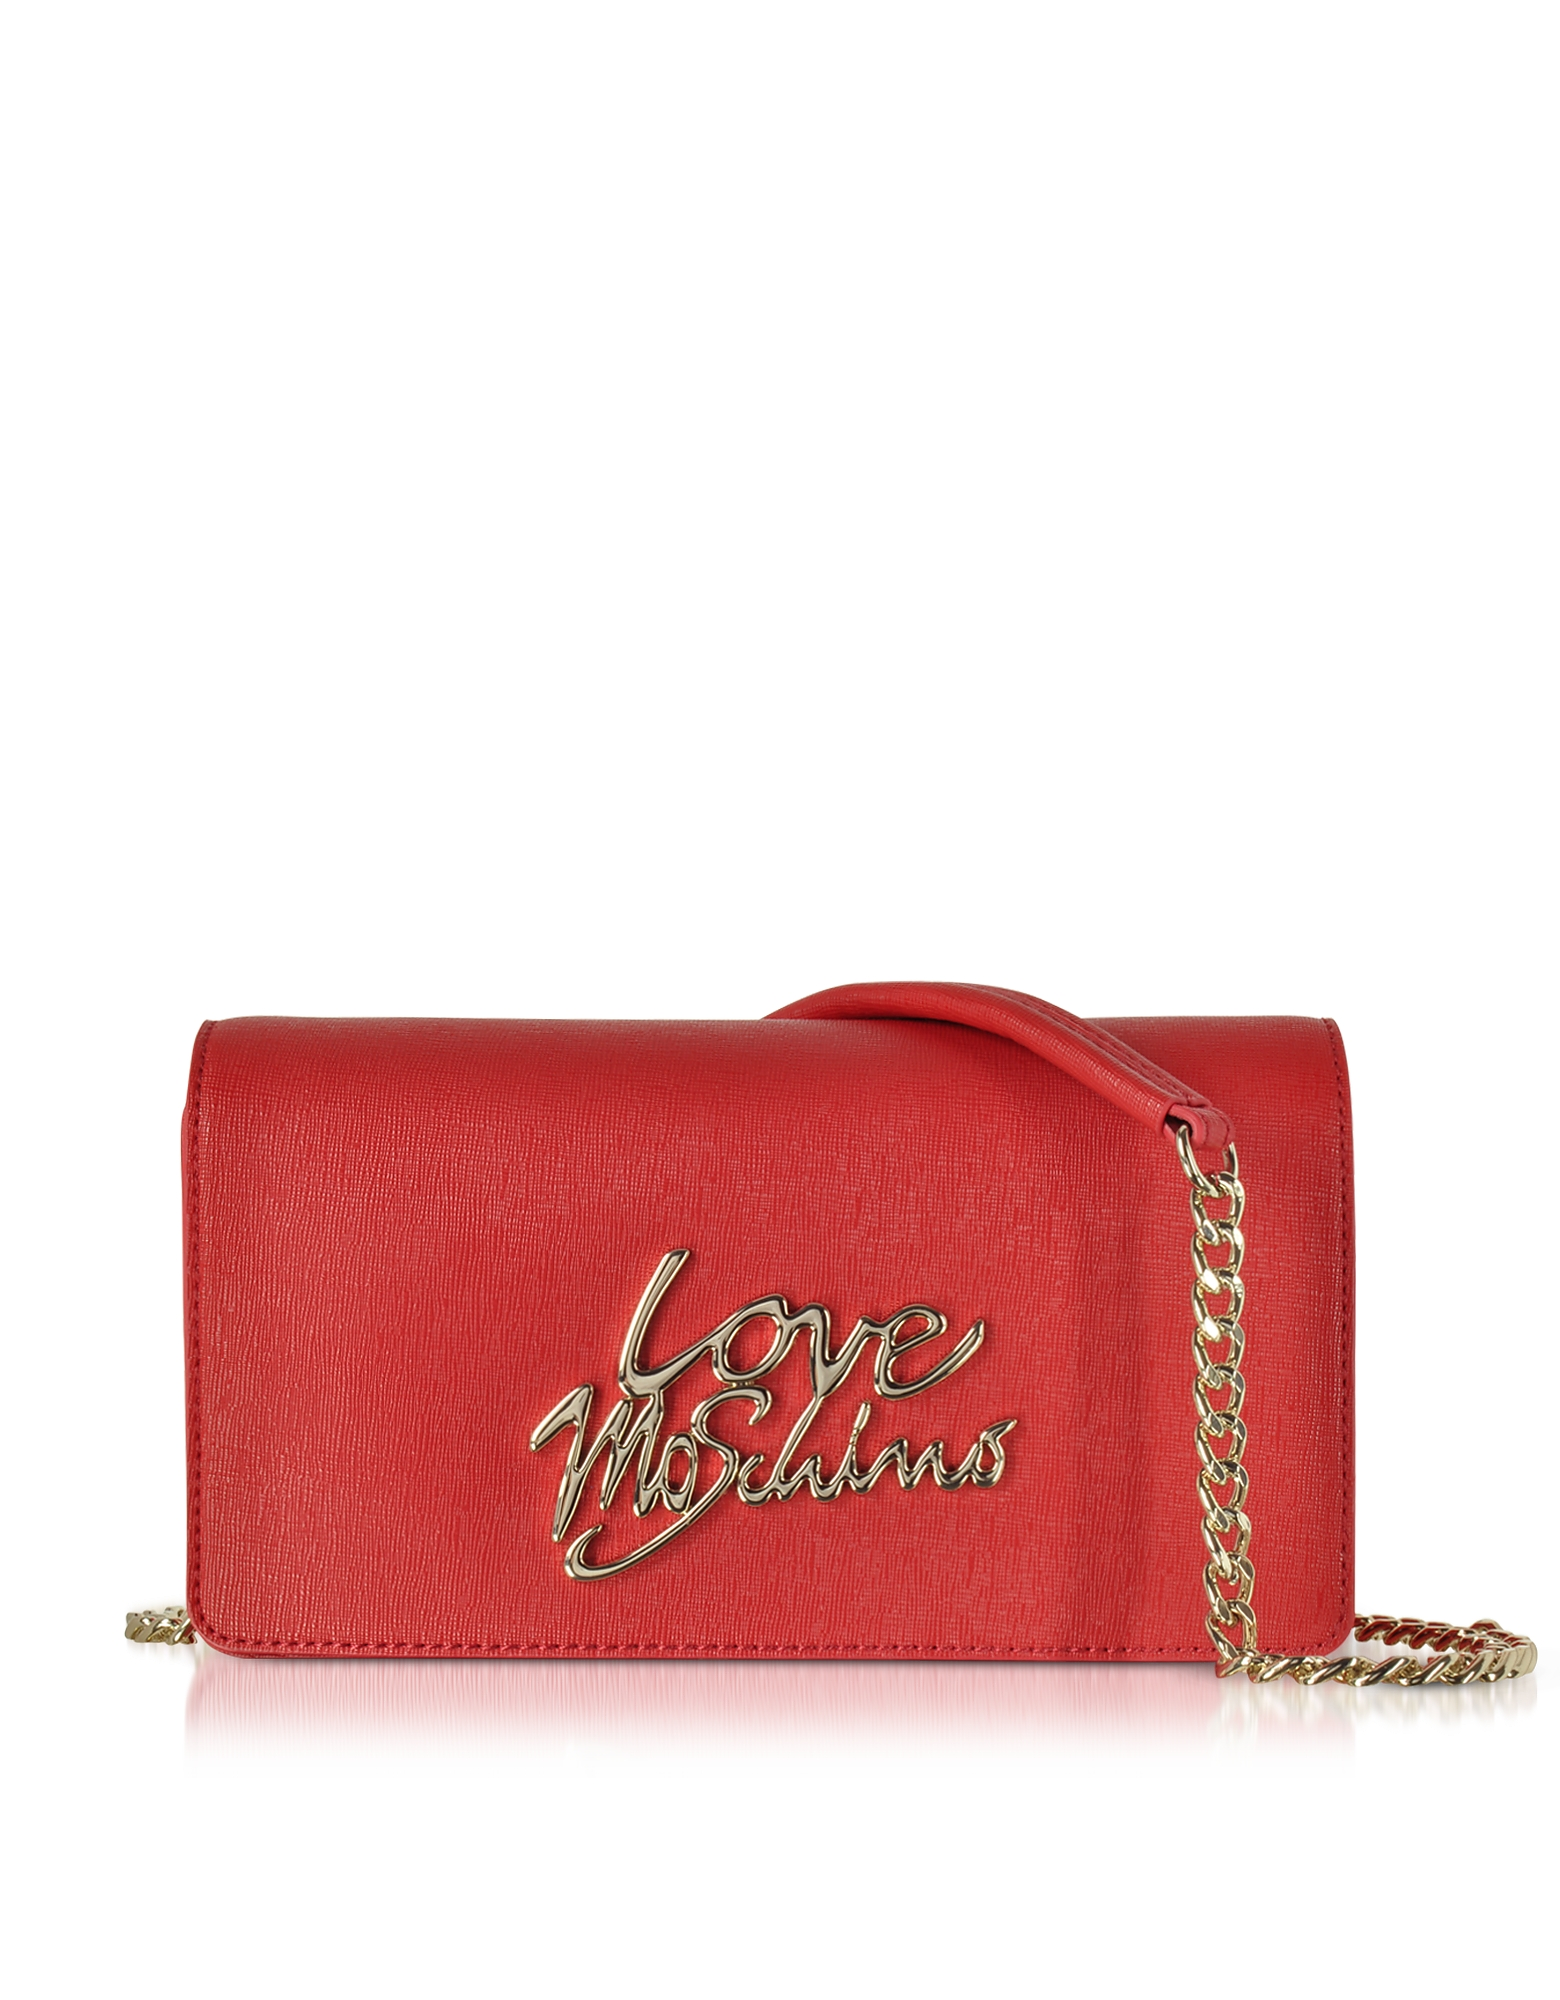 Love Moschino Handbags, Red Saffiano Eco-Leather Clutch w/Foulard